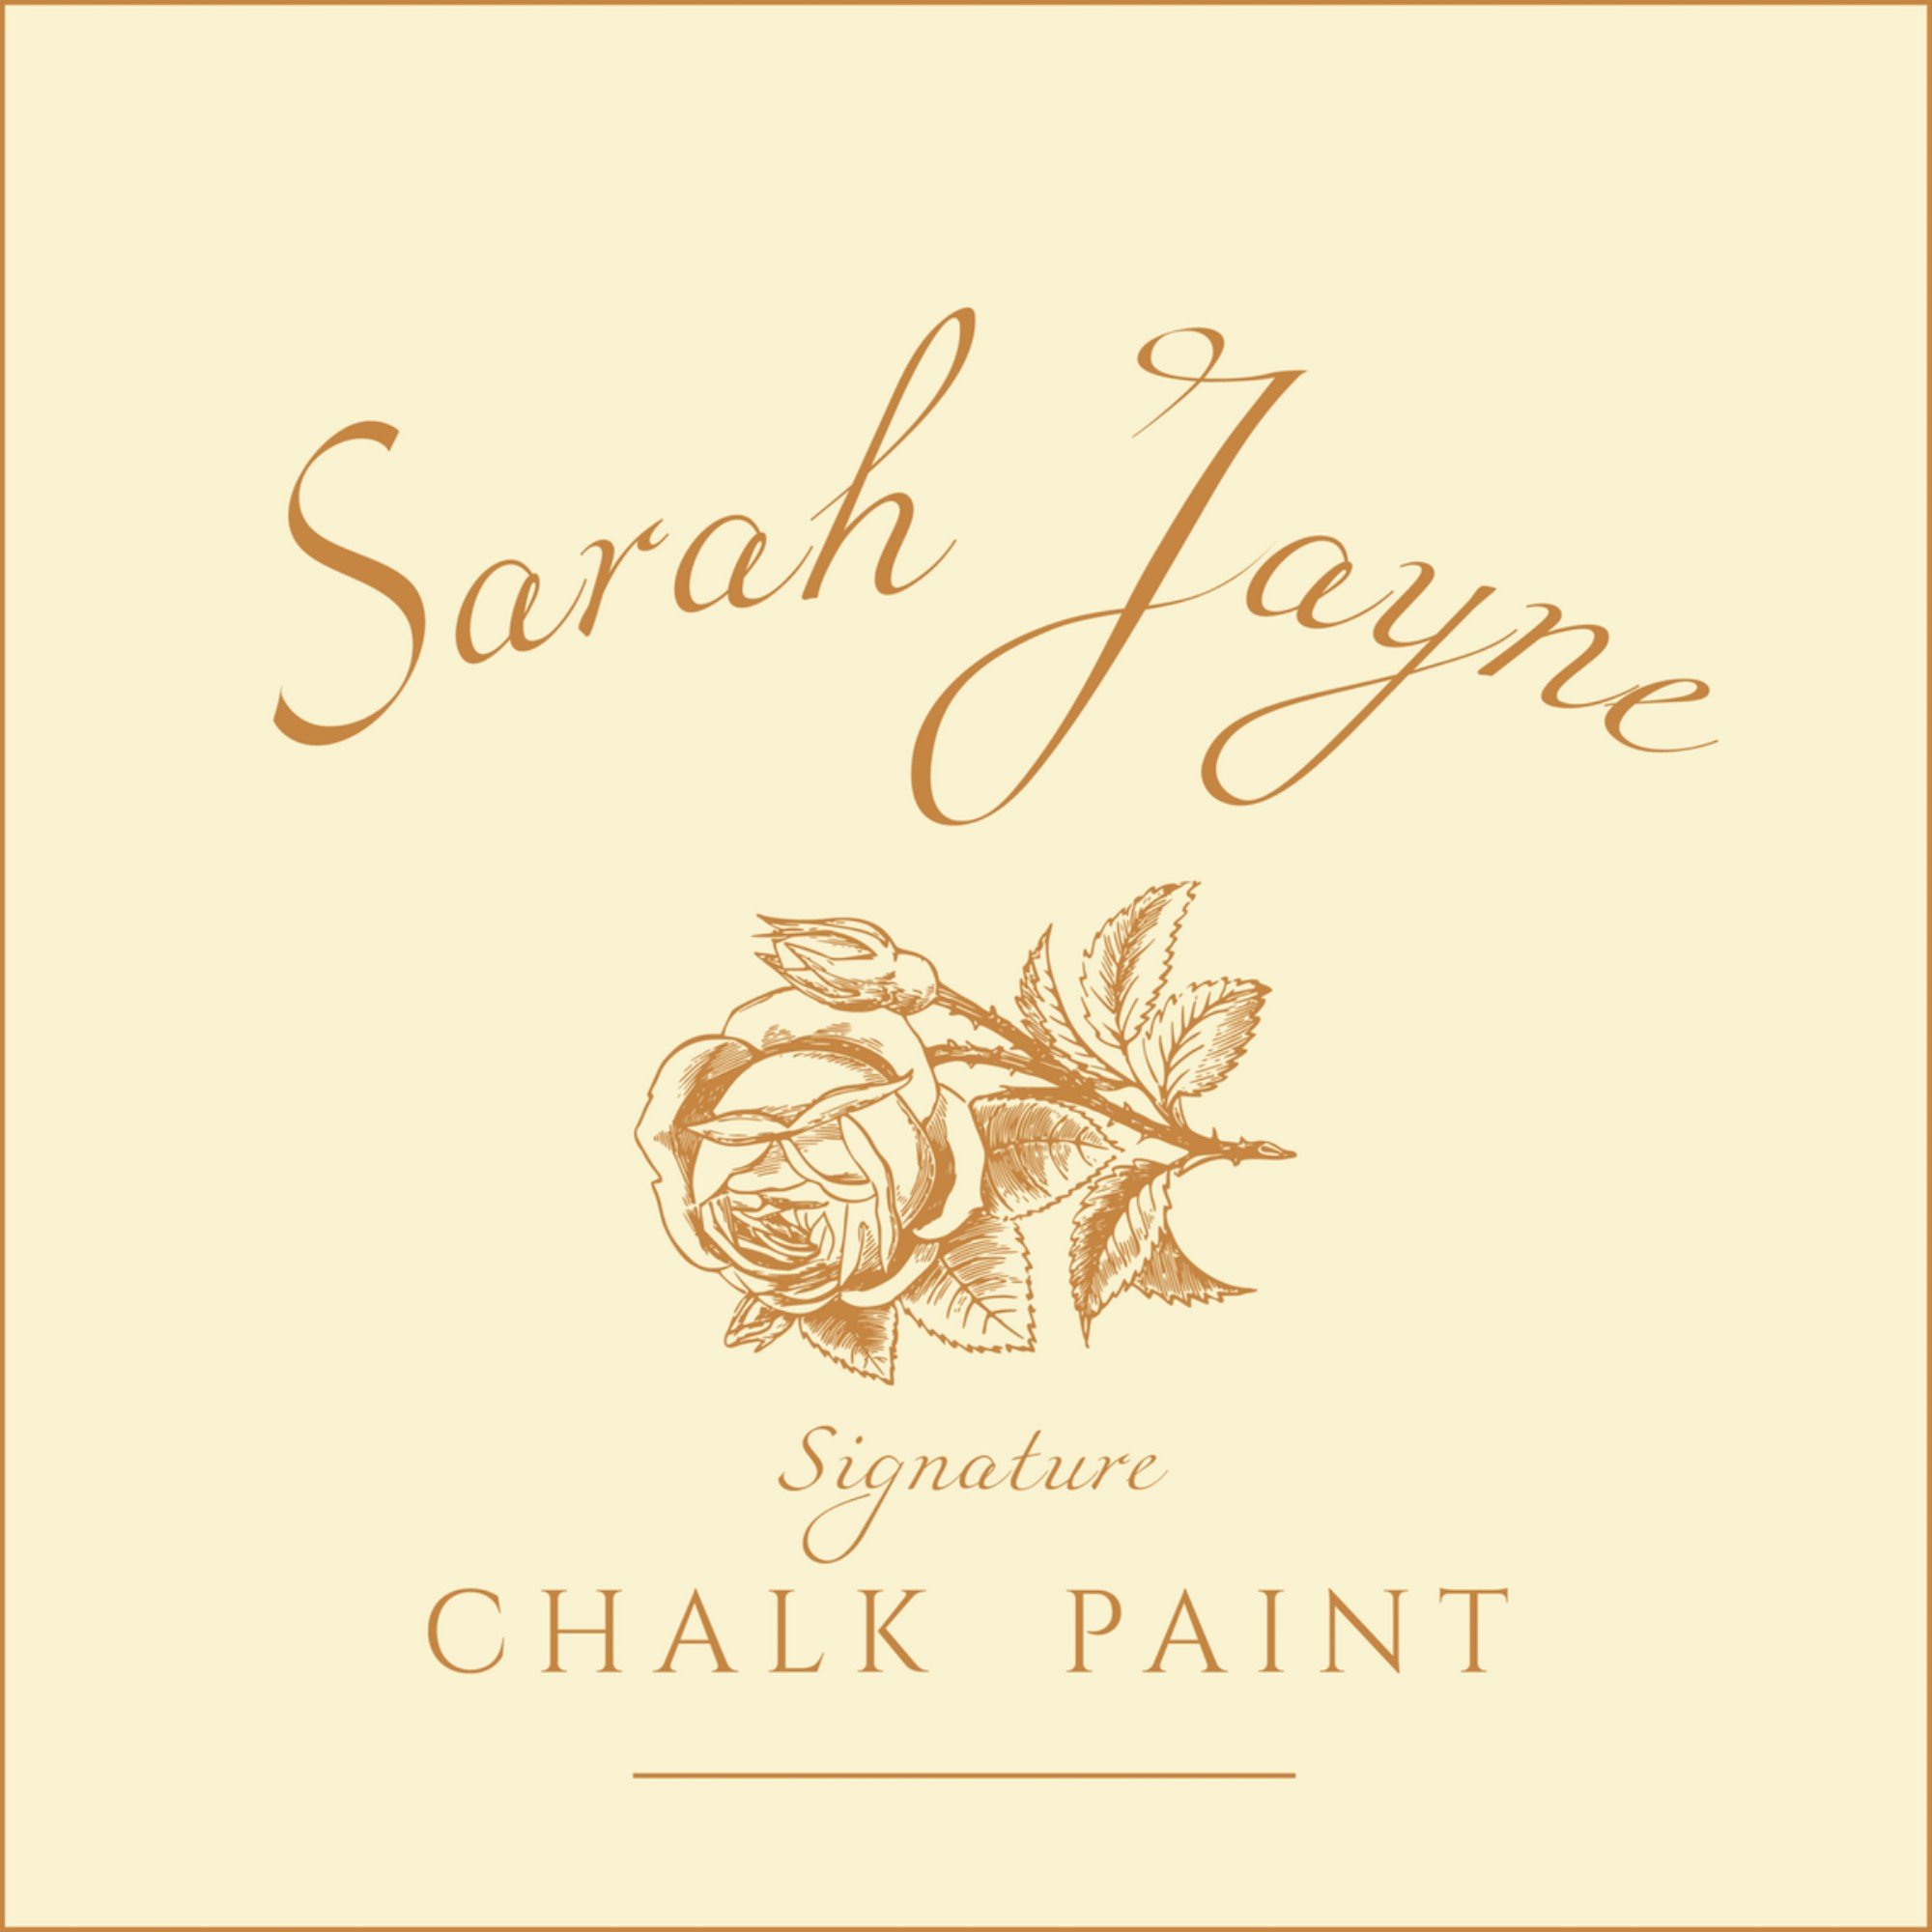 Sarah Jayne Chalk Paint